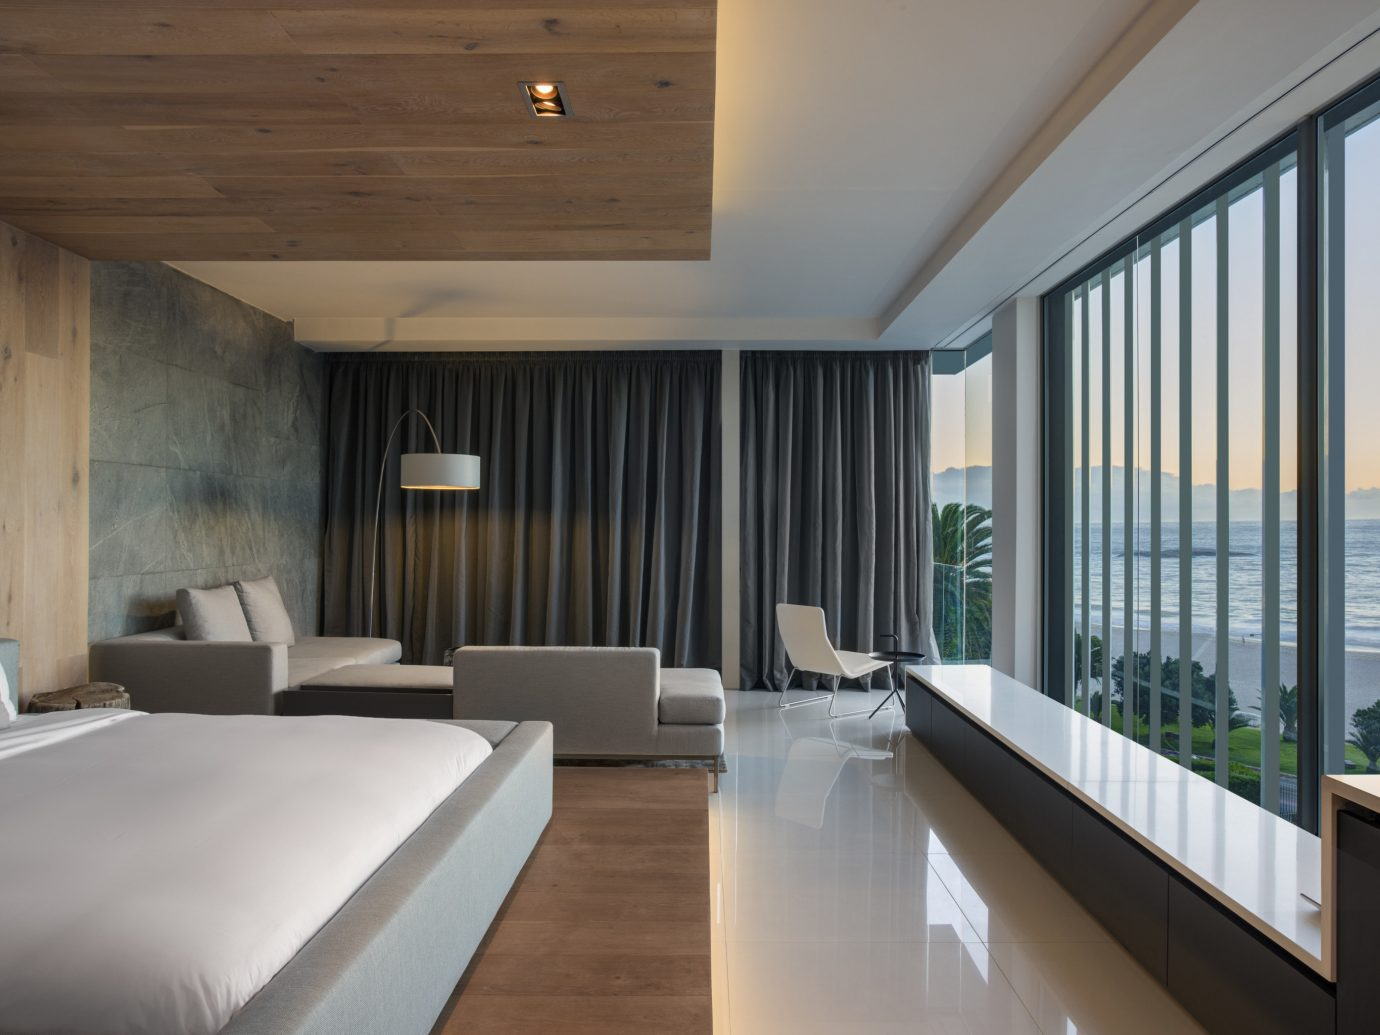 Trip Ideas indoor ceiling wall window floor bed room property condominium house hotel interior design Suite estate home real estate living room Design daylighting professional window covering apartment Bedroom Modern area furniture